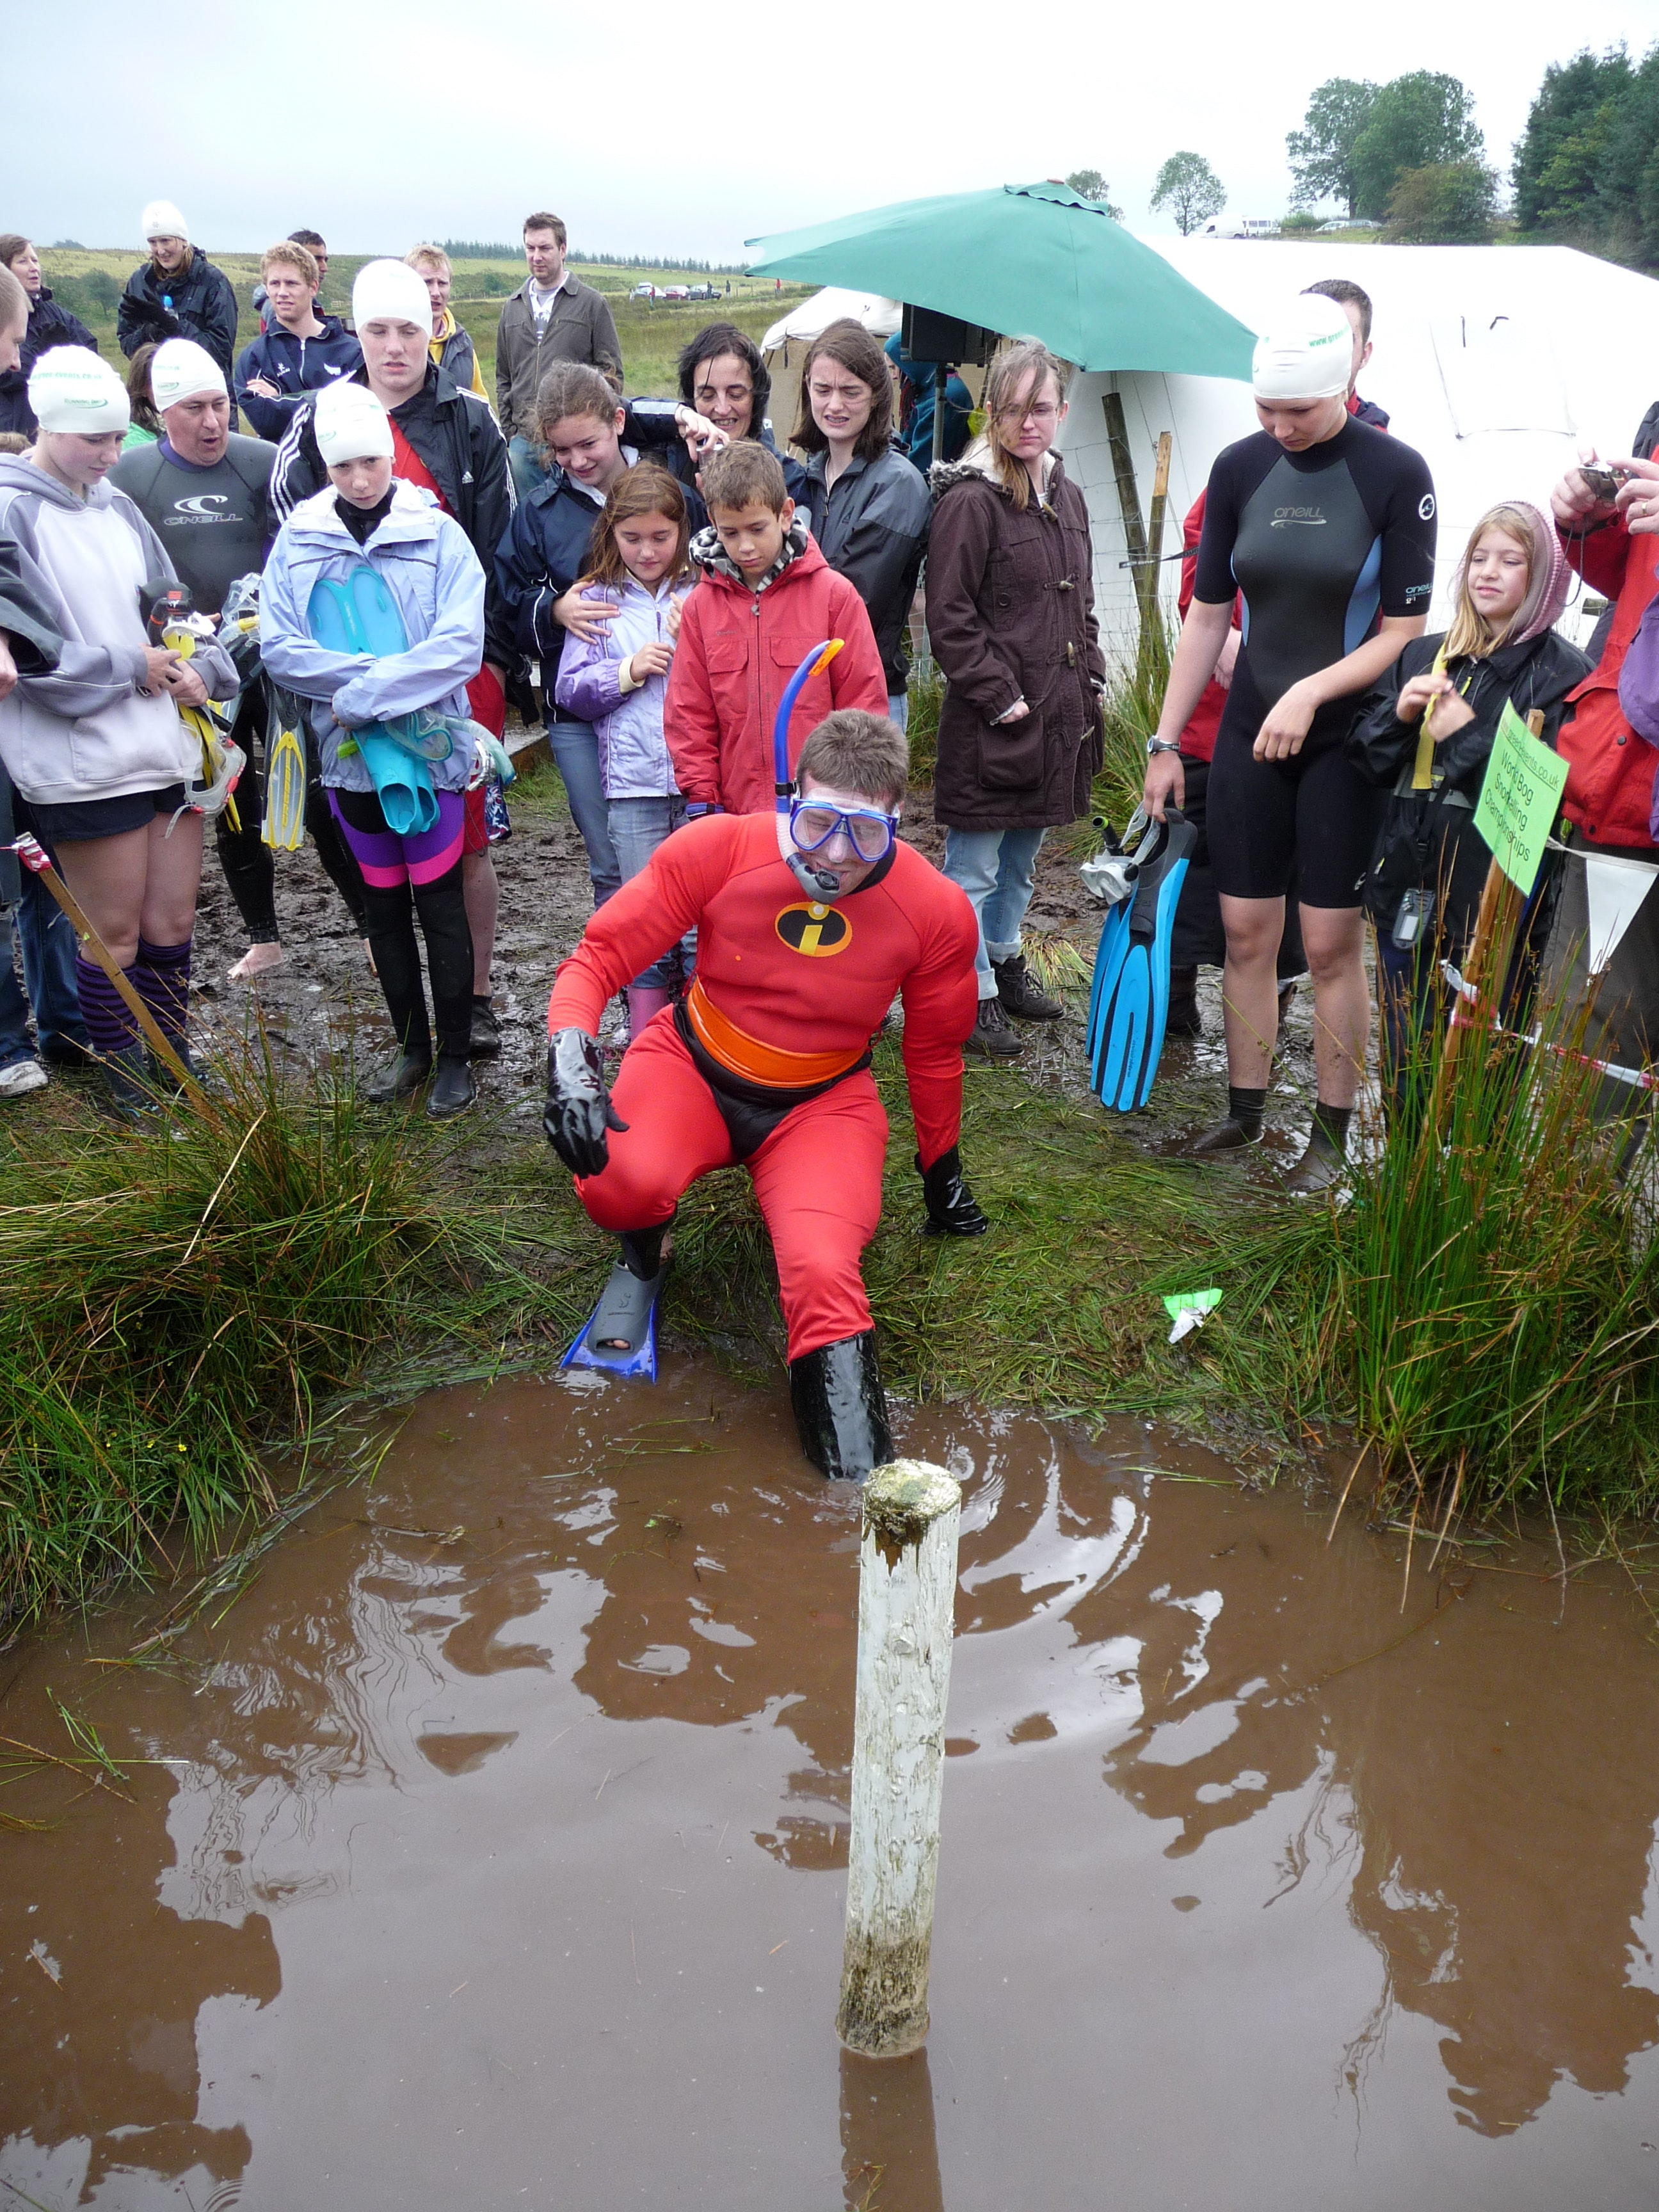 The current record time at the World Bog Snorkeling Championship is one minute and 26.15 seconds.